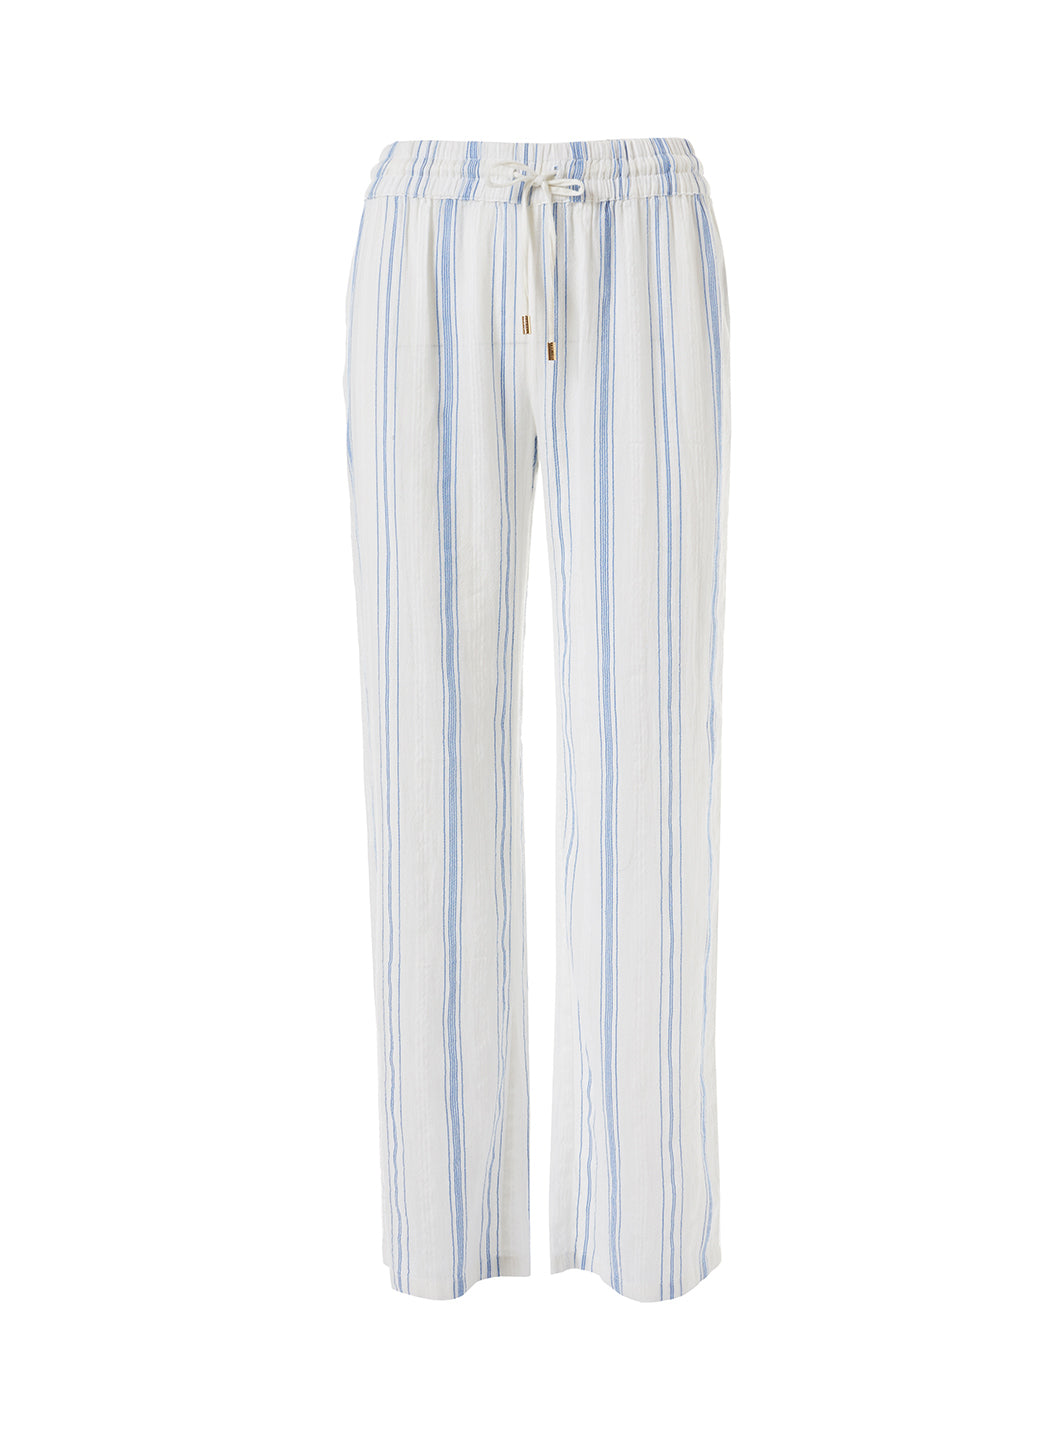 Krissy Blue Stripe Straight Leg Trouser - Melissa Odabash Tops & Bottoms